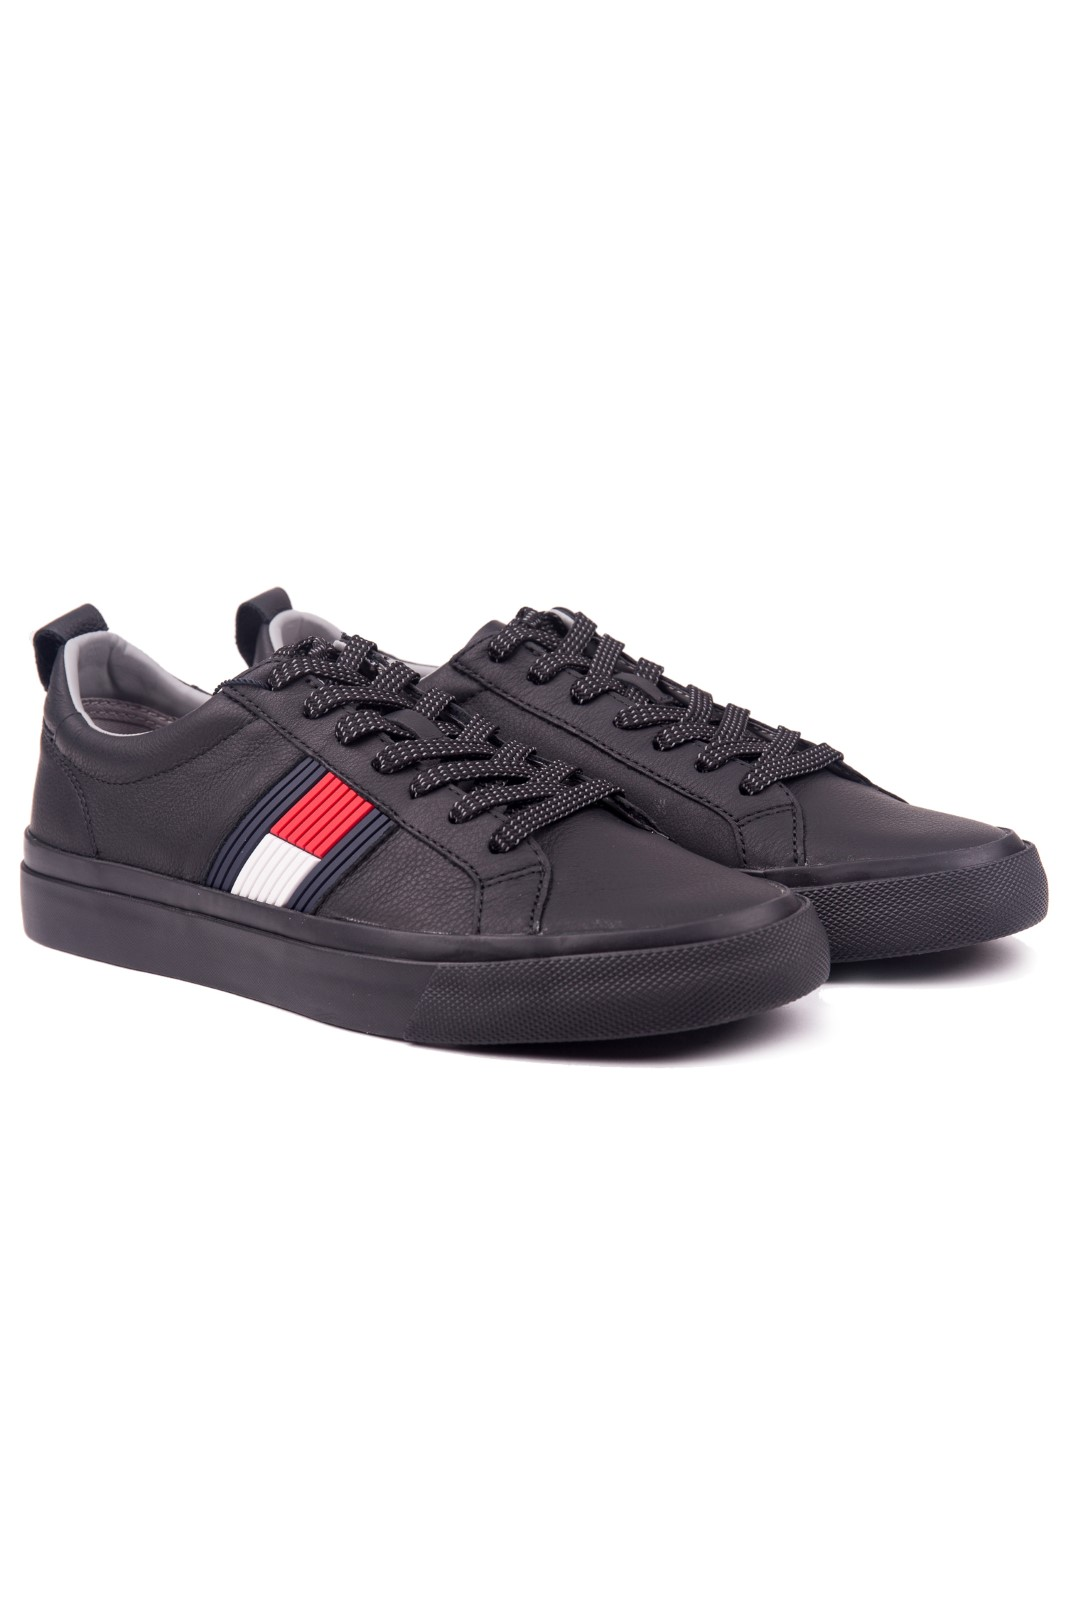 Slip shoes pipe Amount of  Tommy Hilfiger nero maschile pelle scarpe da ginnastica Flag Detail Leather  Sneaker Black - Scarpe da uomo • Differenta.it